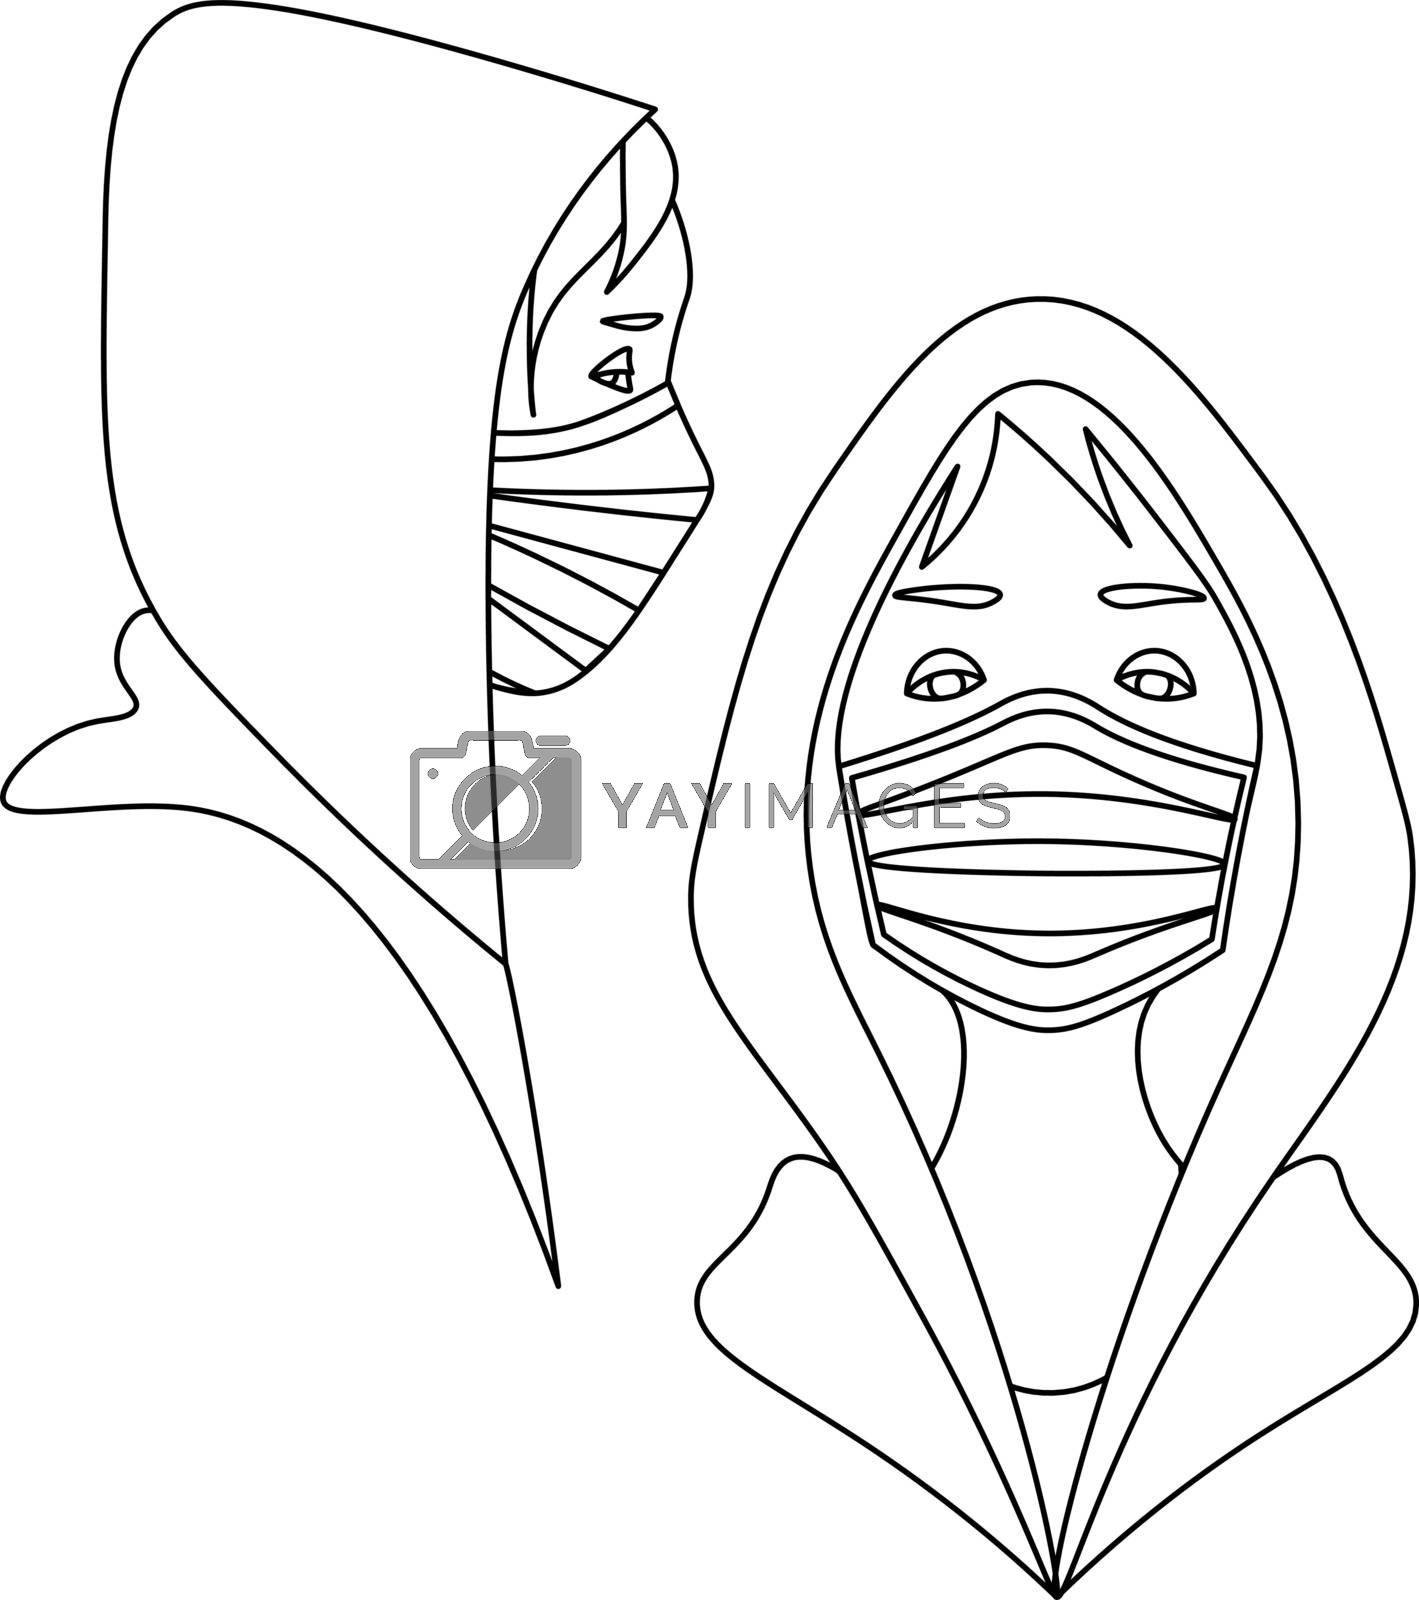 Simple minimal line art with two young people in hoodies and medical masks